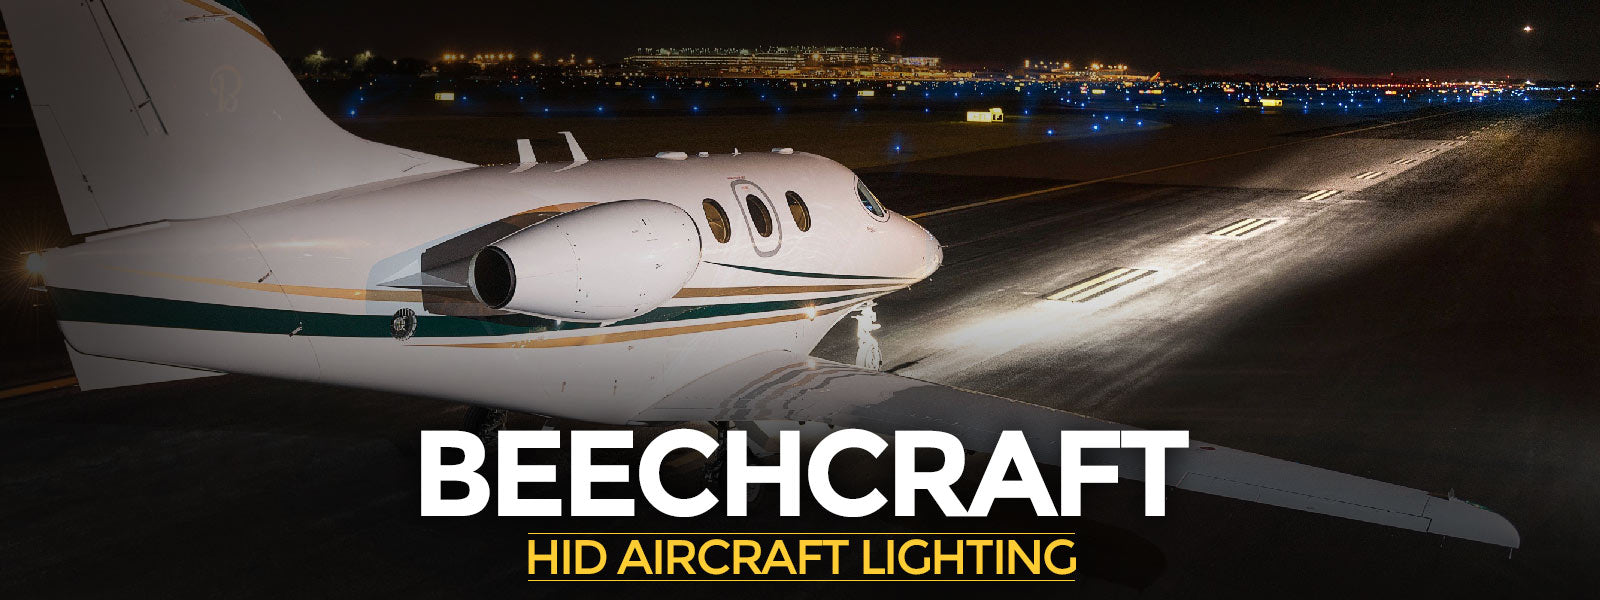 Beechcraft Aircraft Lighting – Whelen Aerospace Technologies